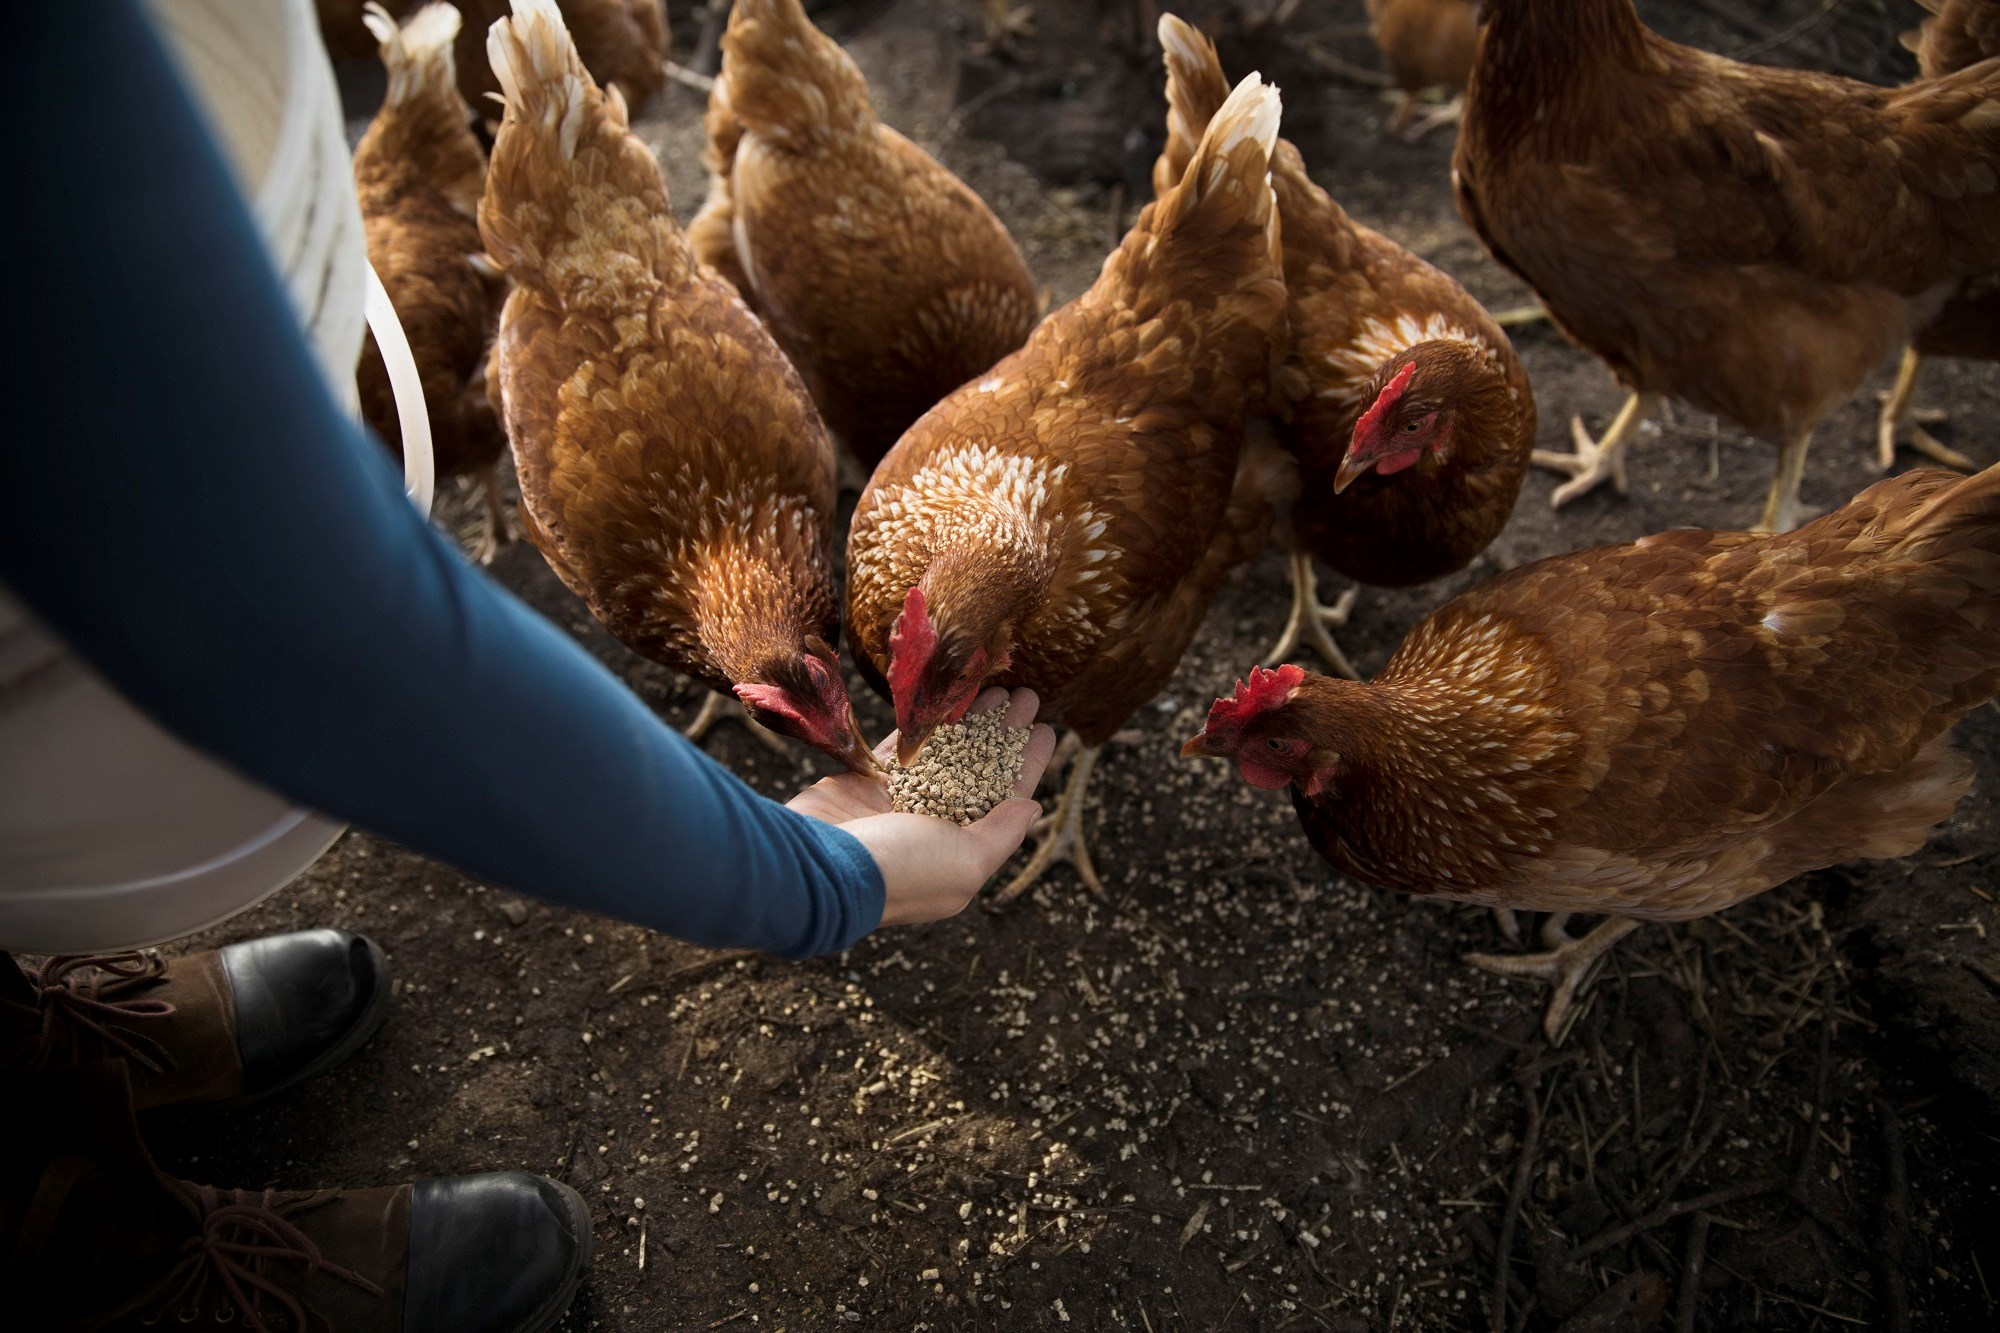 Final CDC Update on <i>Salmonella</i> Linked to Backyard Poultry